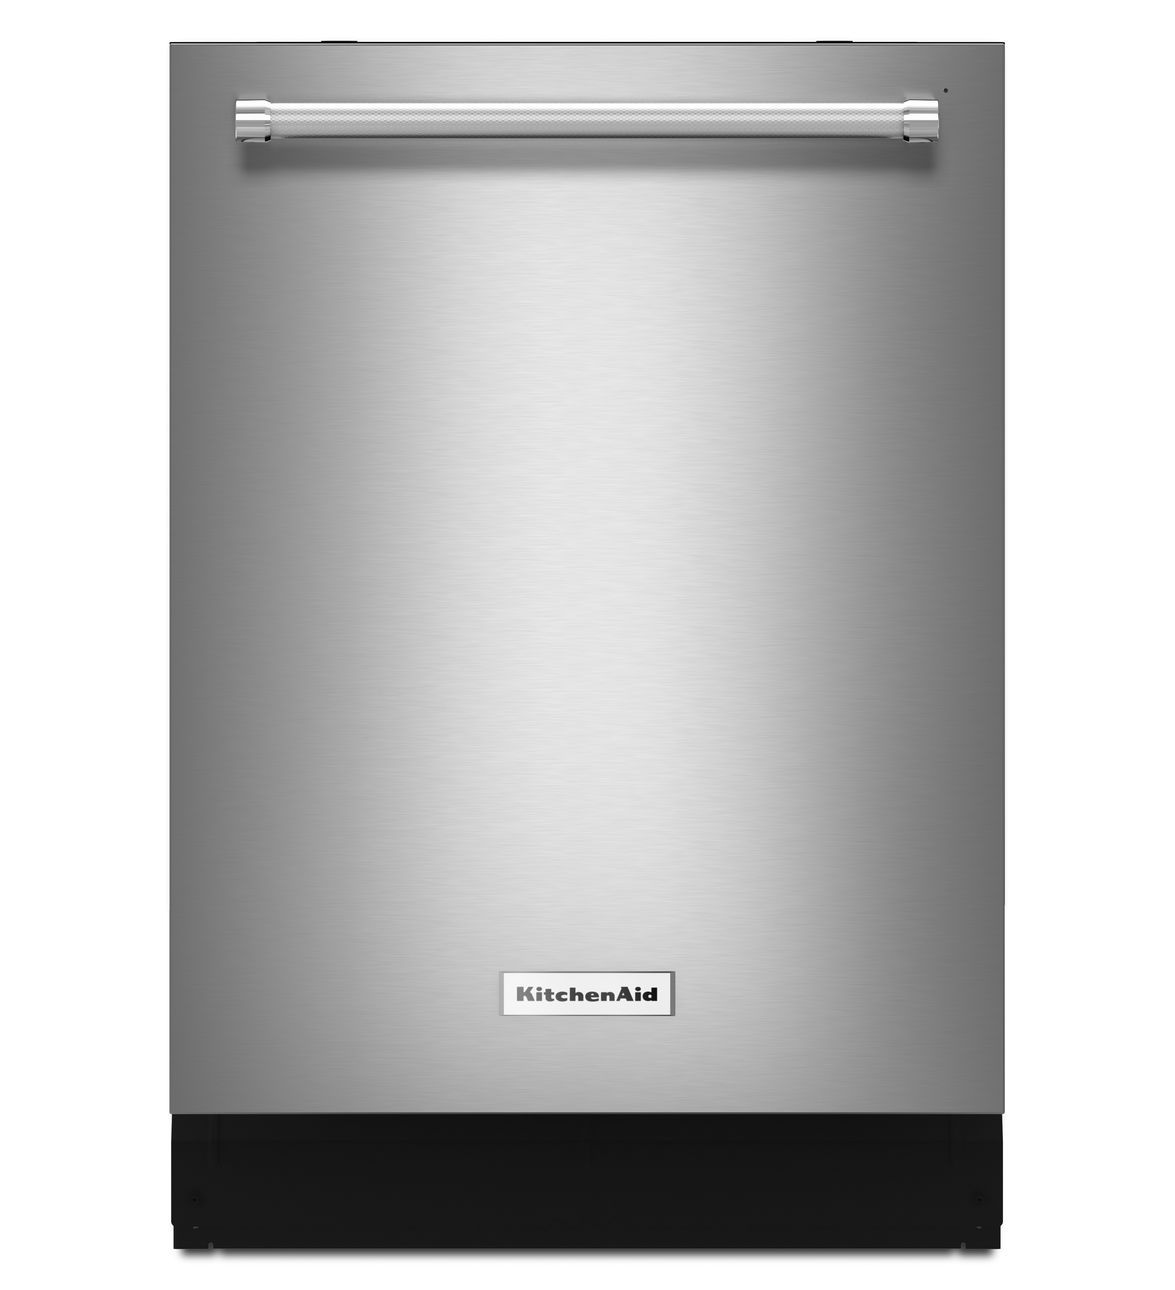 Dishwasher with Dynamic Wash Arms